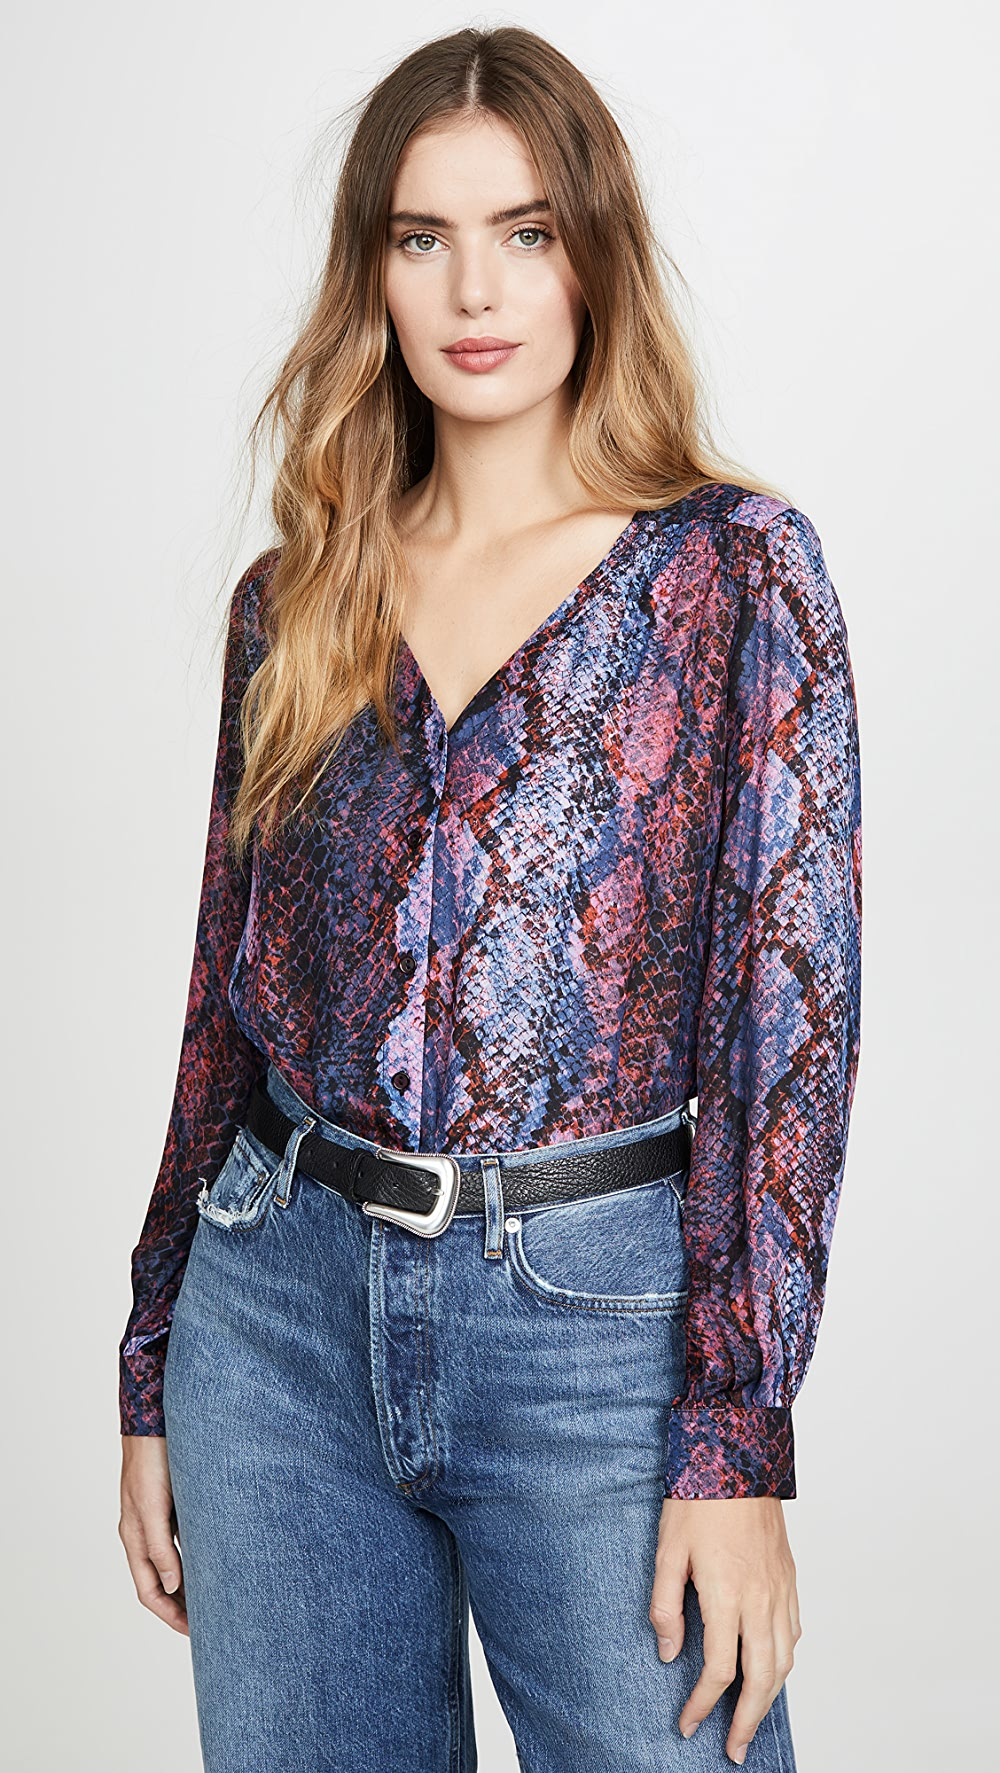 Methodical Parker - Sachi Blouse Attractive Appearance